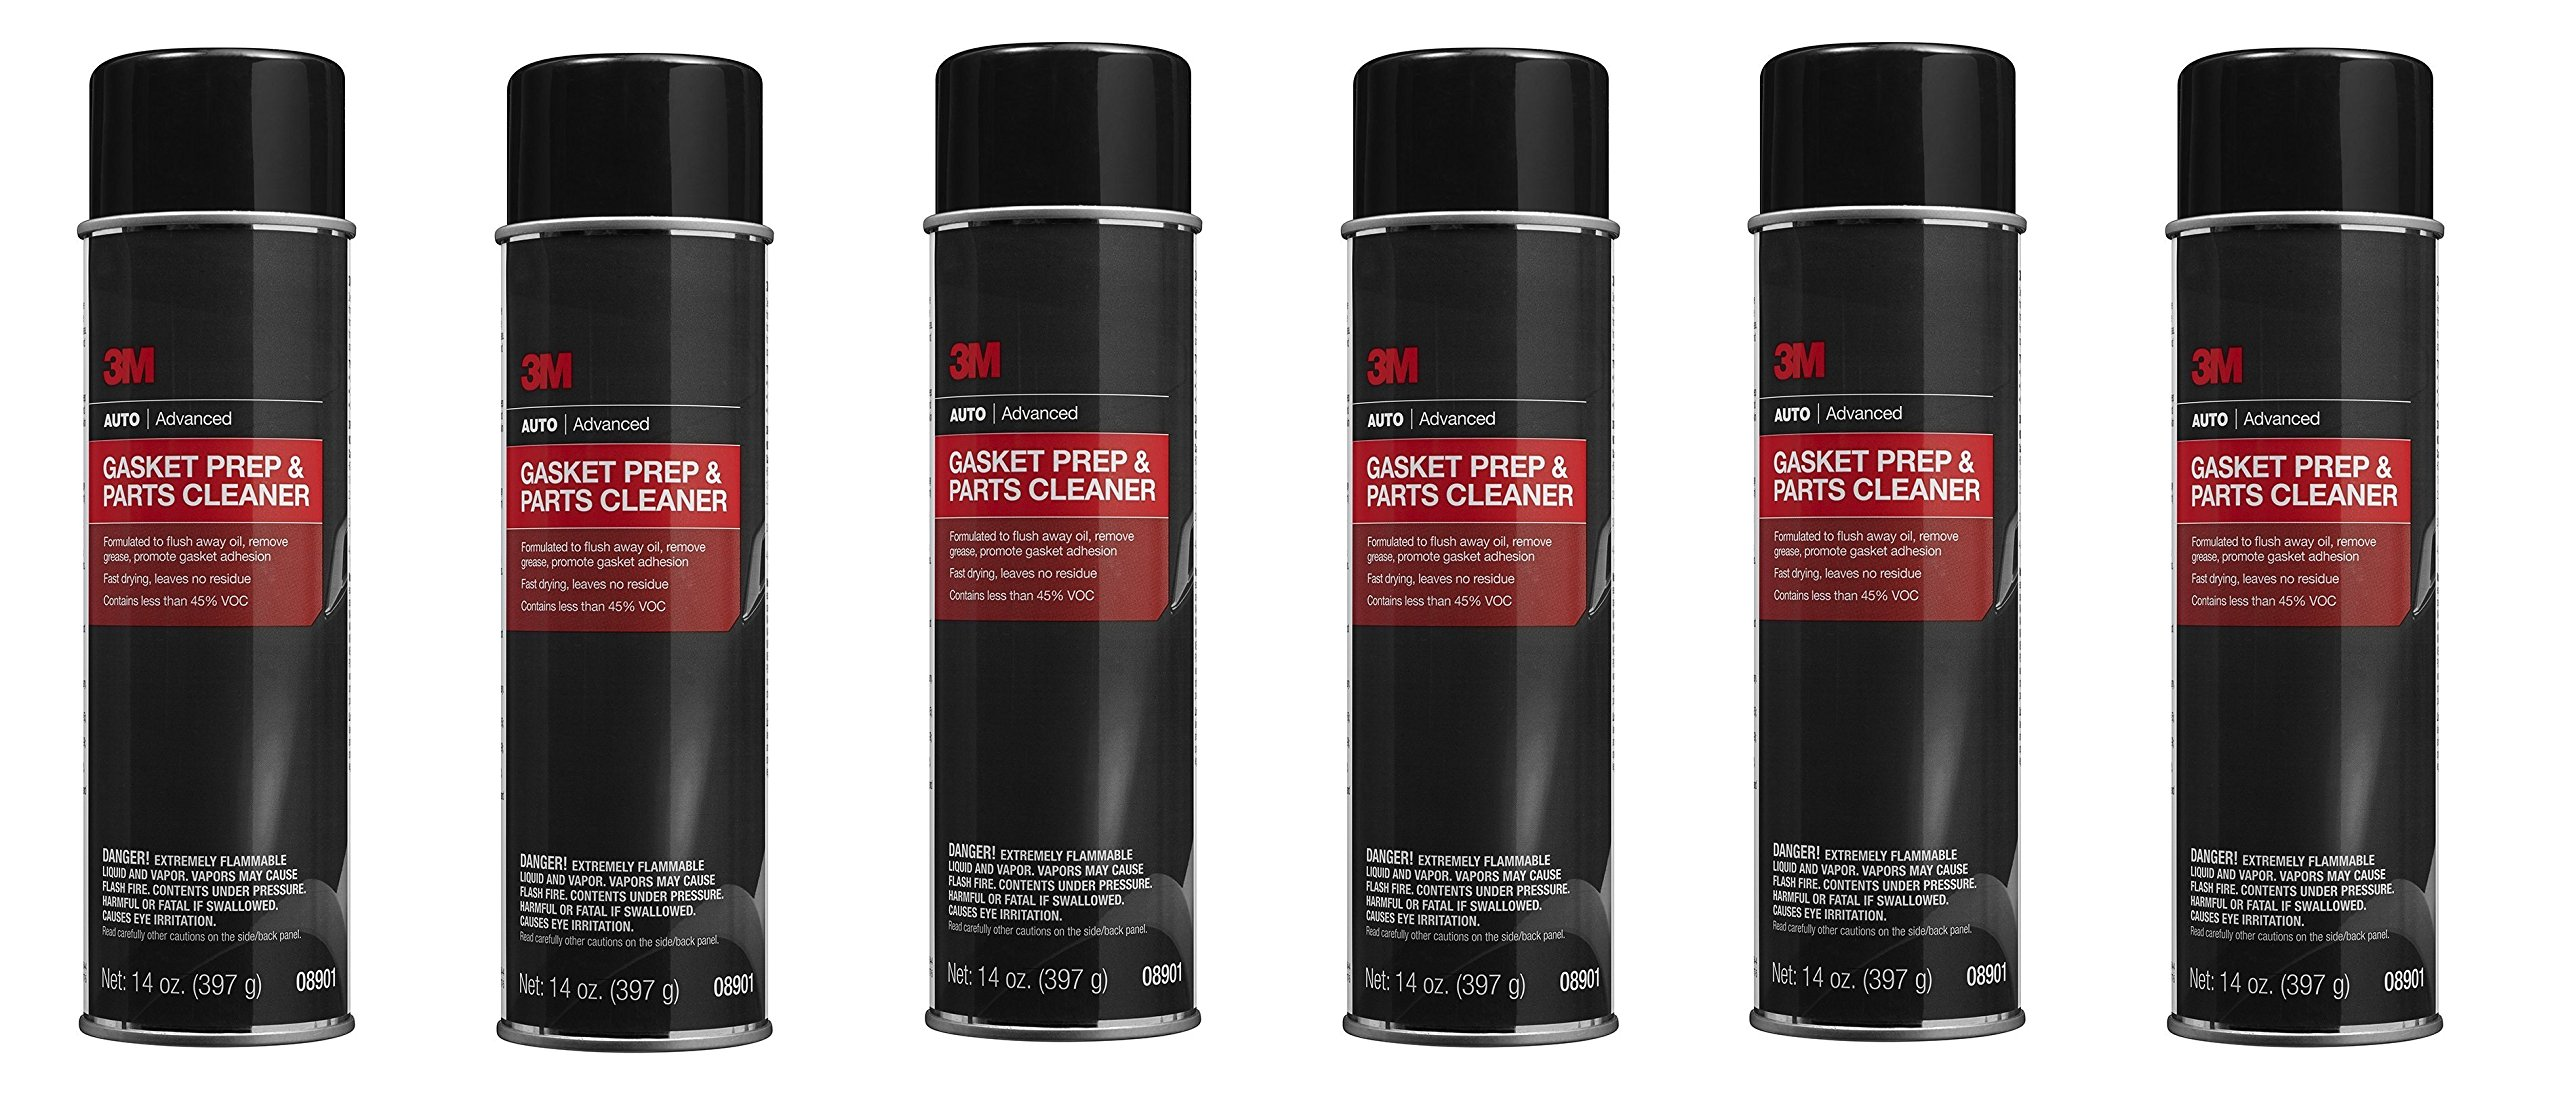 3M ® 08901 Gasket Prep and Parts Cleaner - 14 fl. oz. (6)